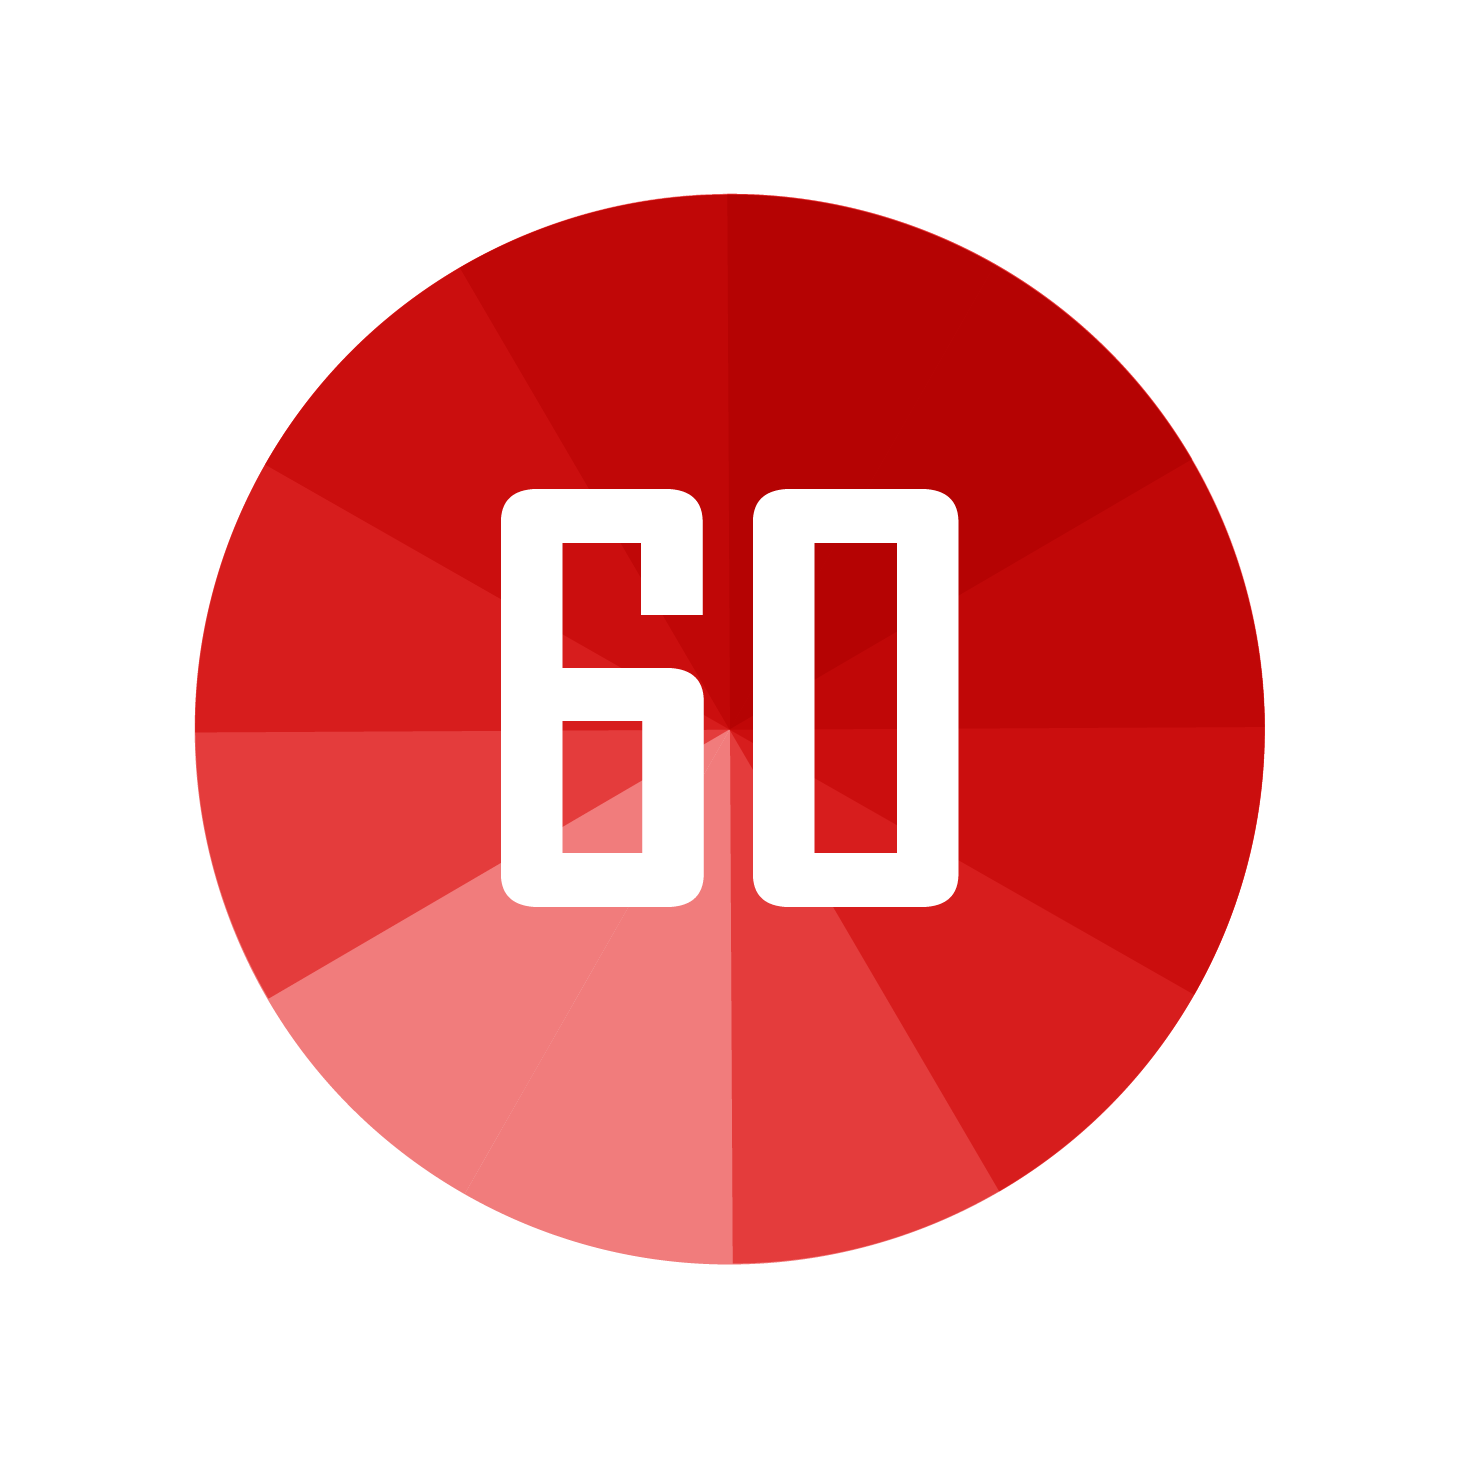 One Complete Business 60 minute on-demand small business consulting session icon